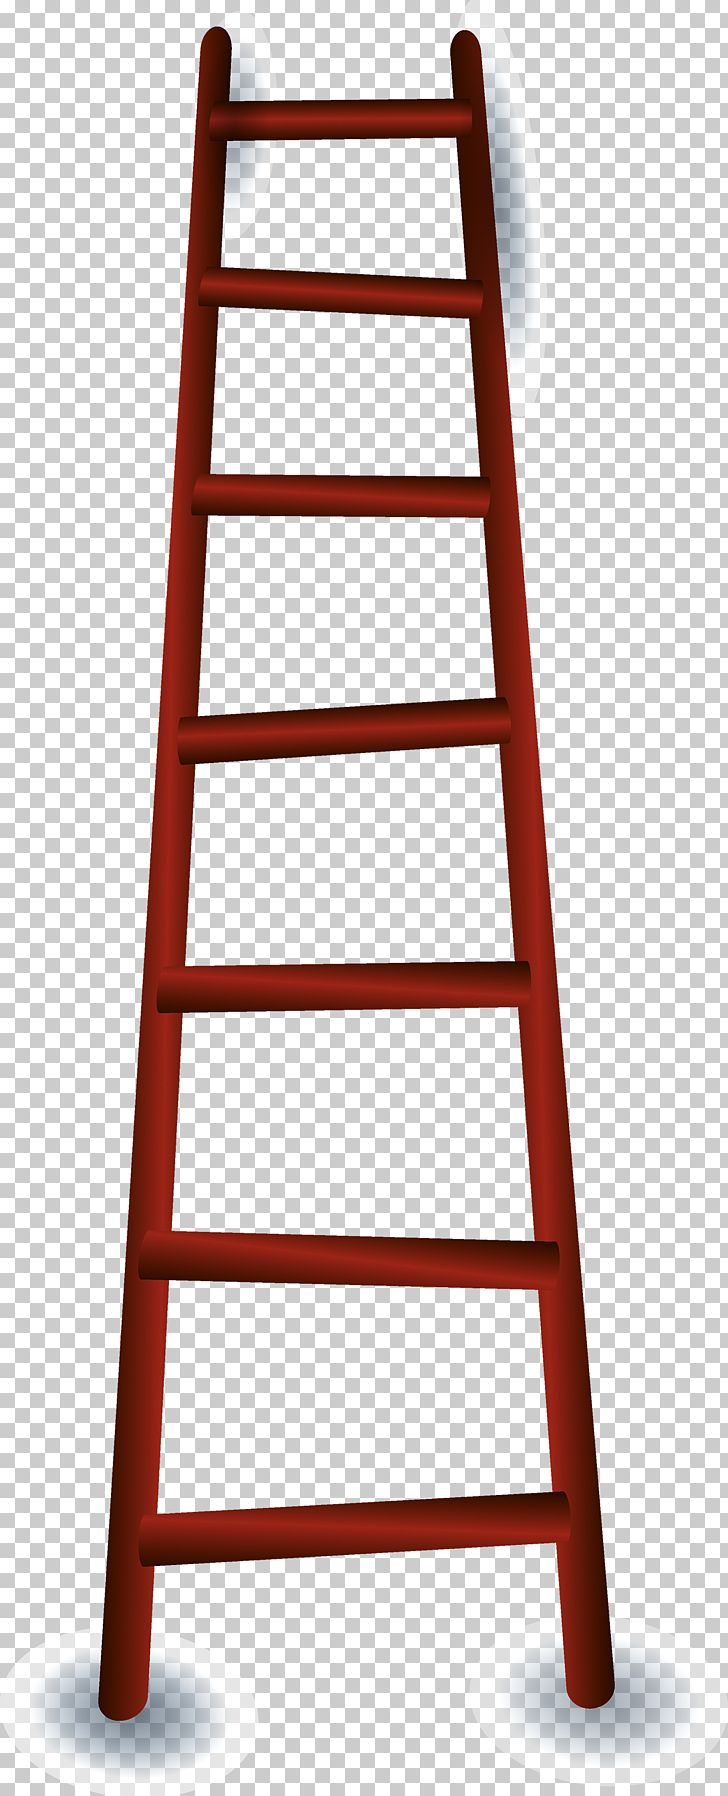 Ladder Stairs PNG, Clipart, Animation, Book Ladder, Cartoon Ladder.